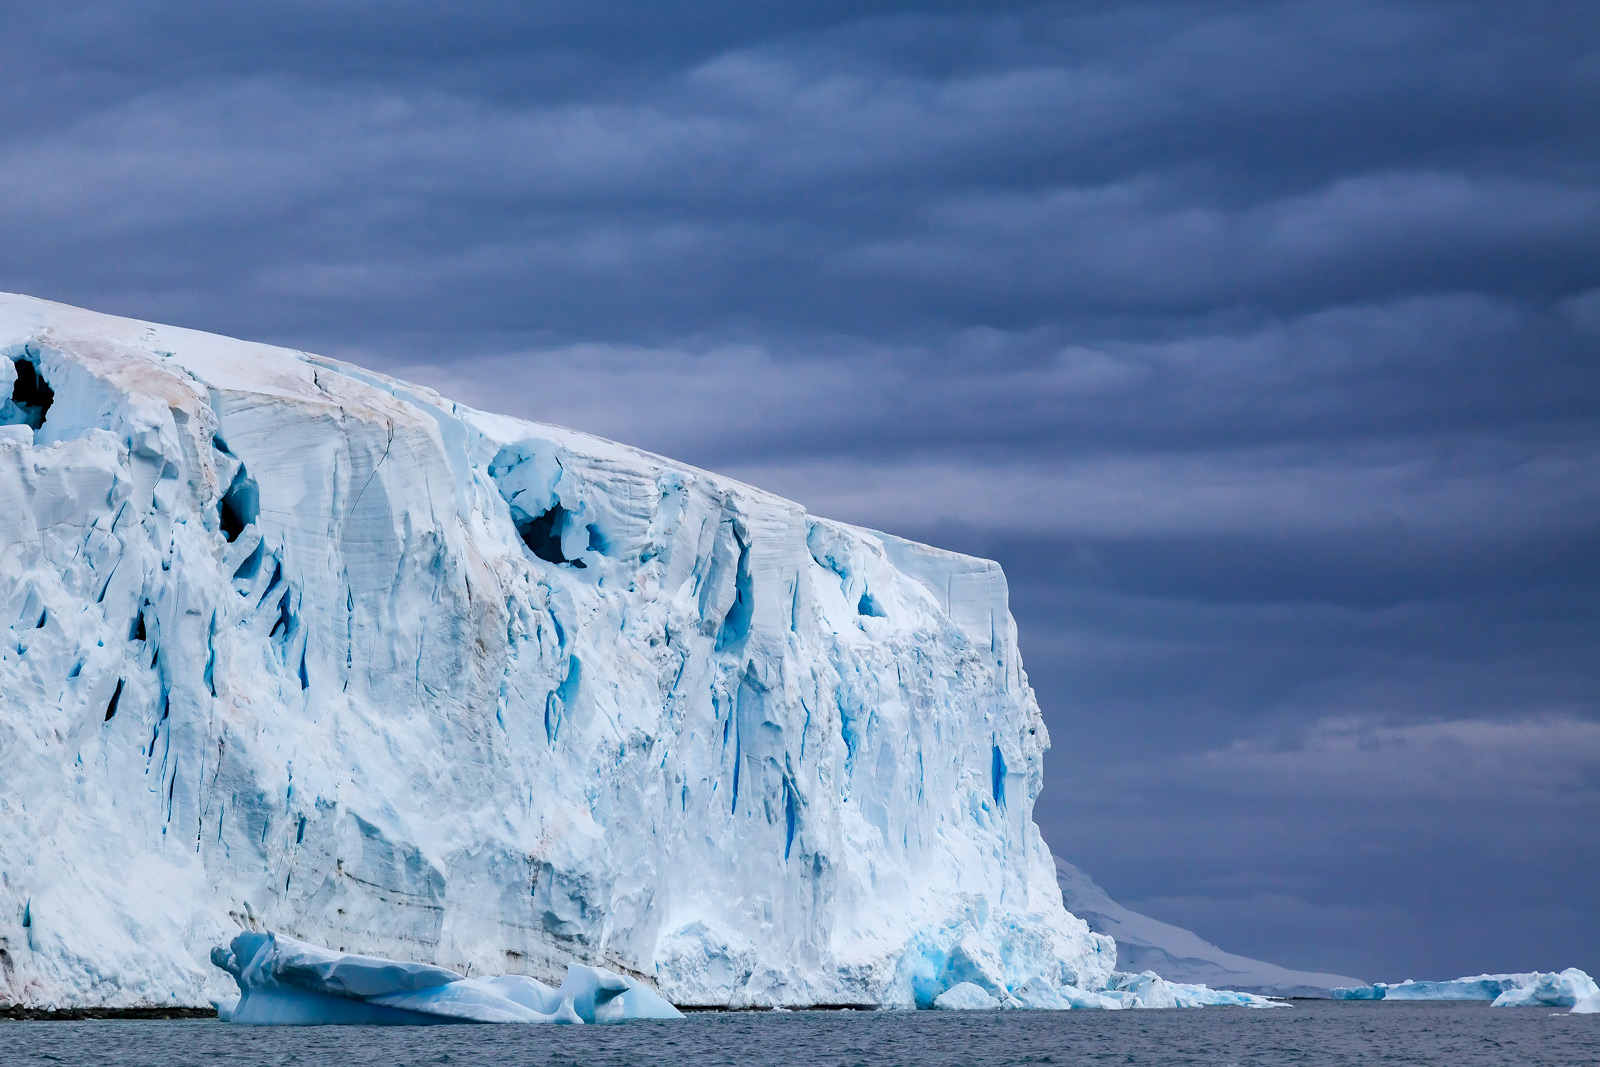 A Limited Edition, Fine Art photograph in Antarctica of the end of a huge iceberg set against stormy dark skies.  Available as...